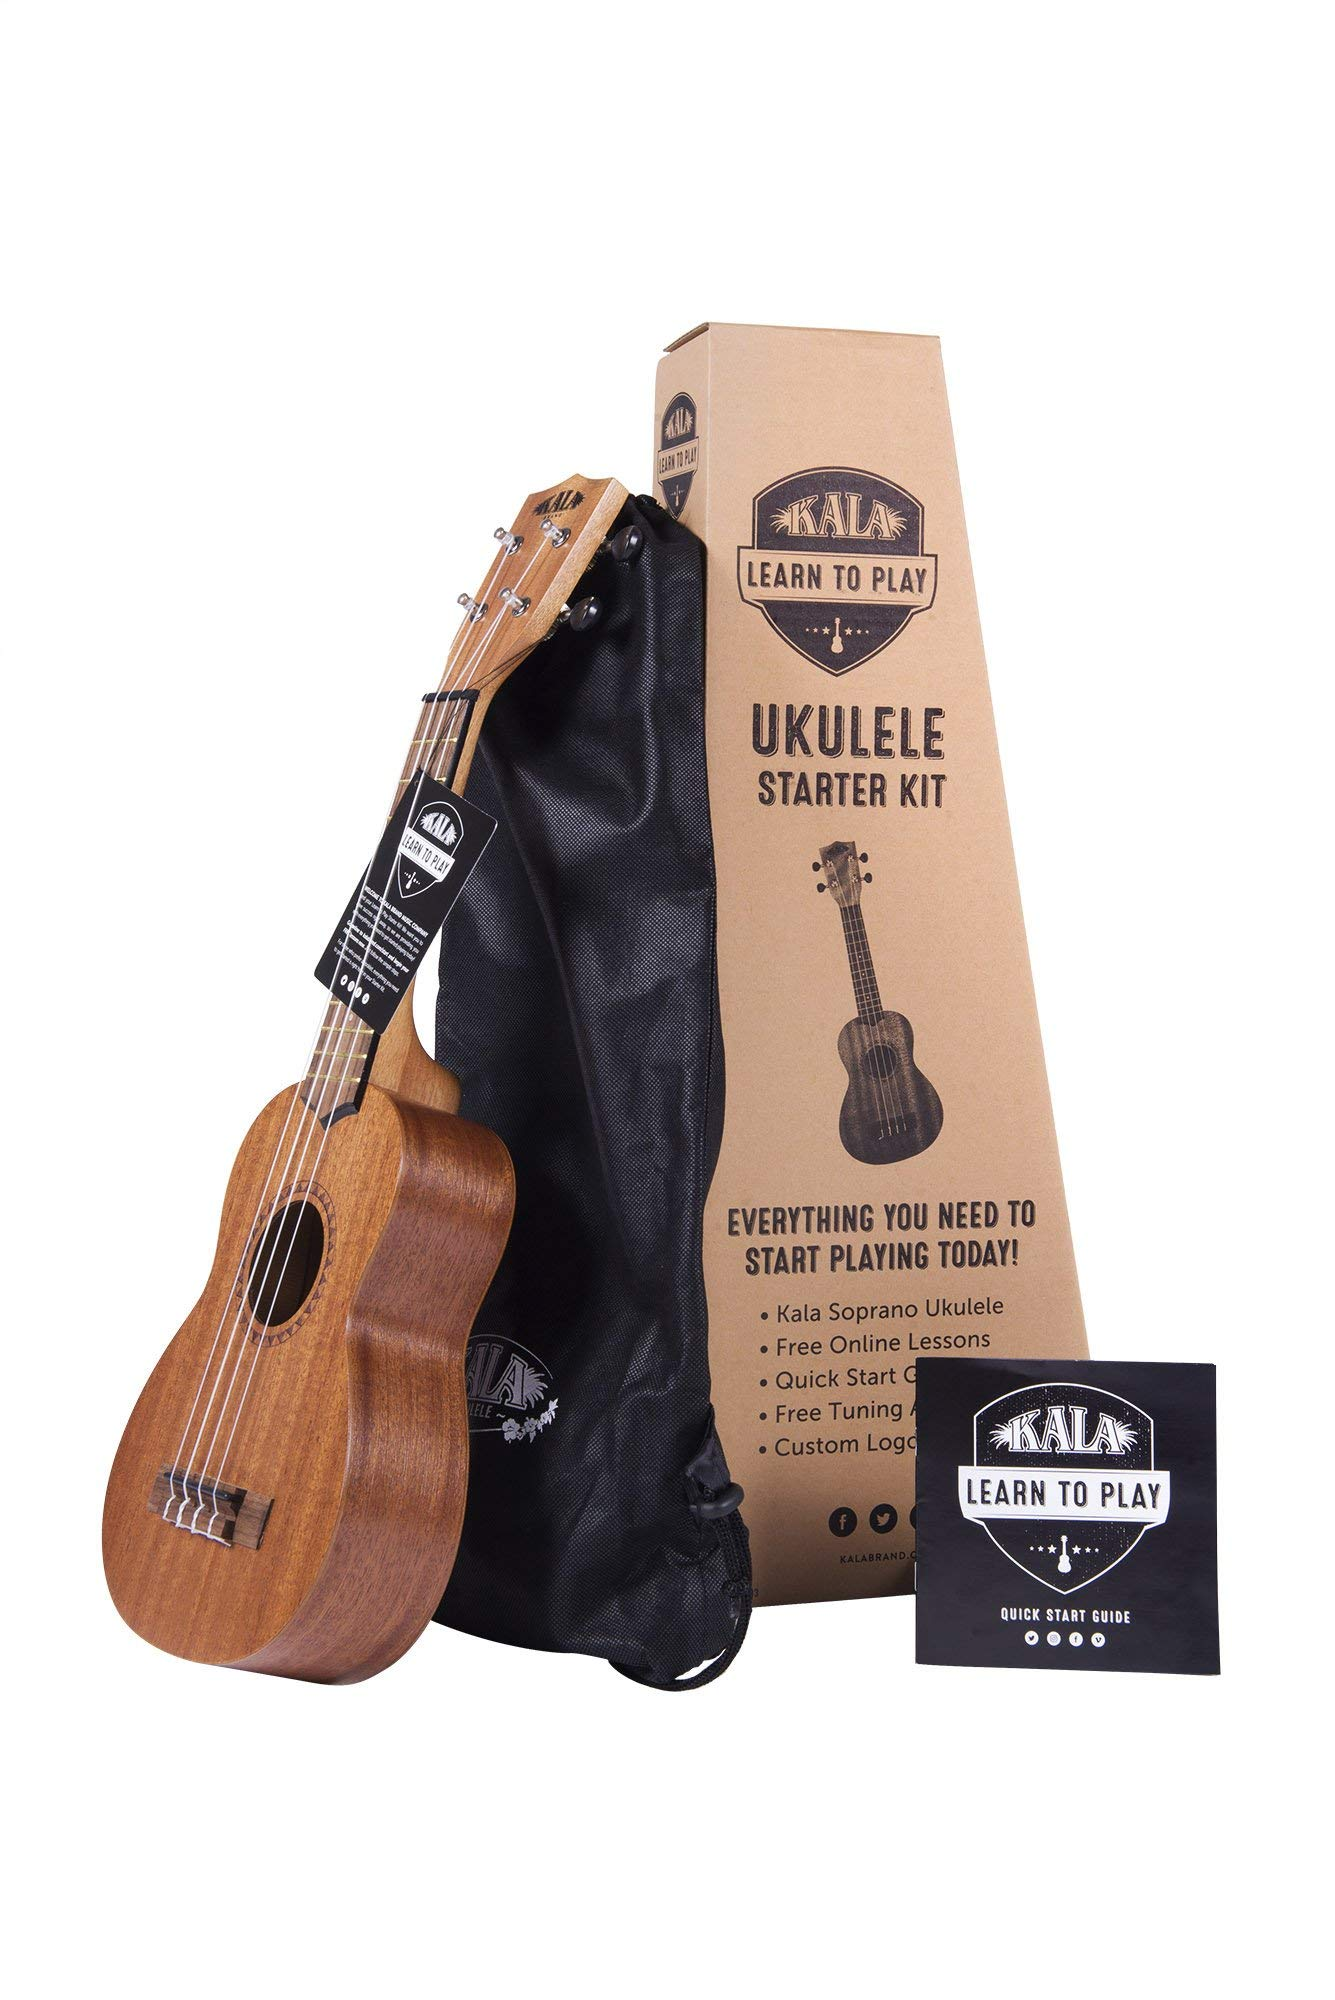 Kala Official Learn to Play Ukulele Soprano Starter Kit, Satin Mahogany - Includes online lessons, tuner app, and booklet (KALA-LTP-S) (Renewed)